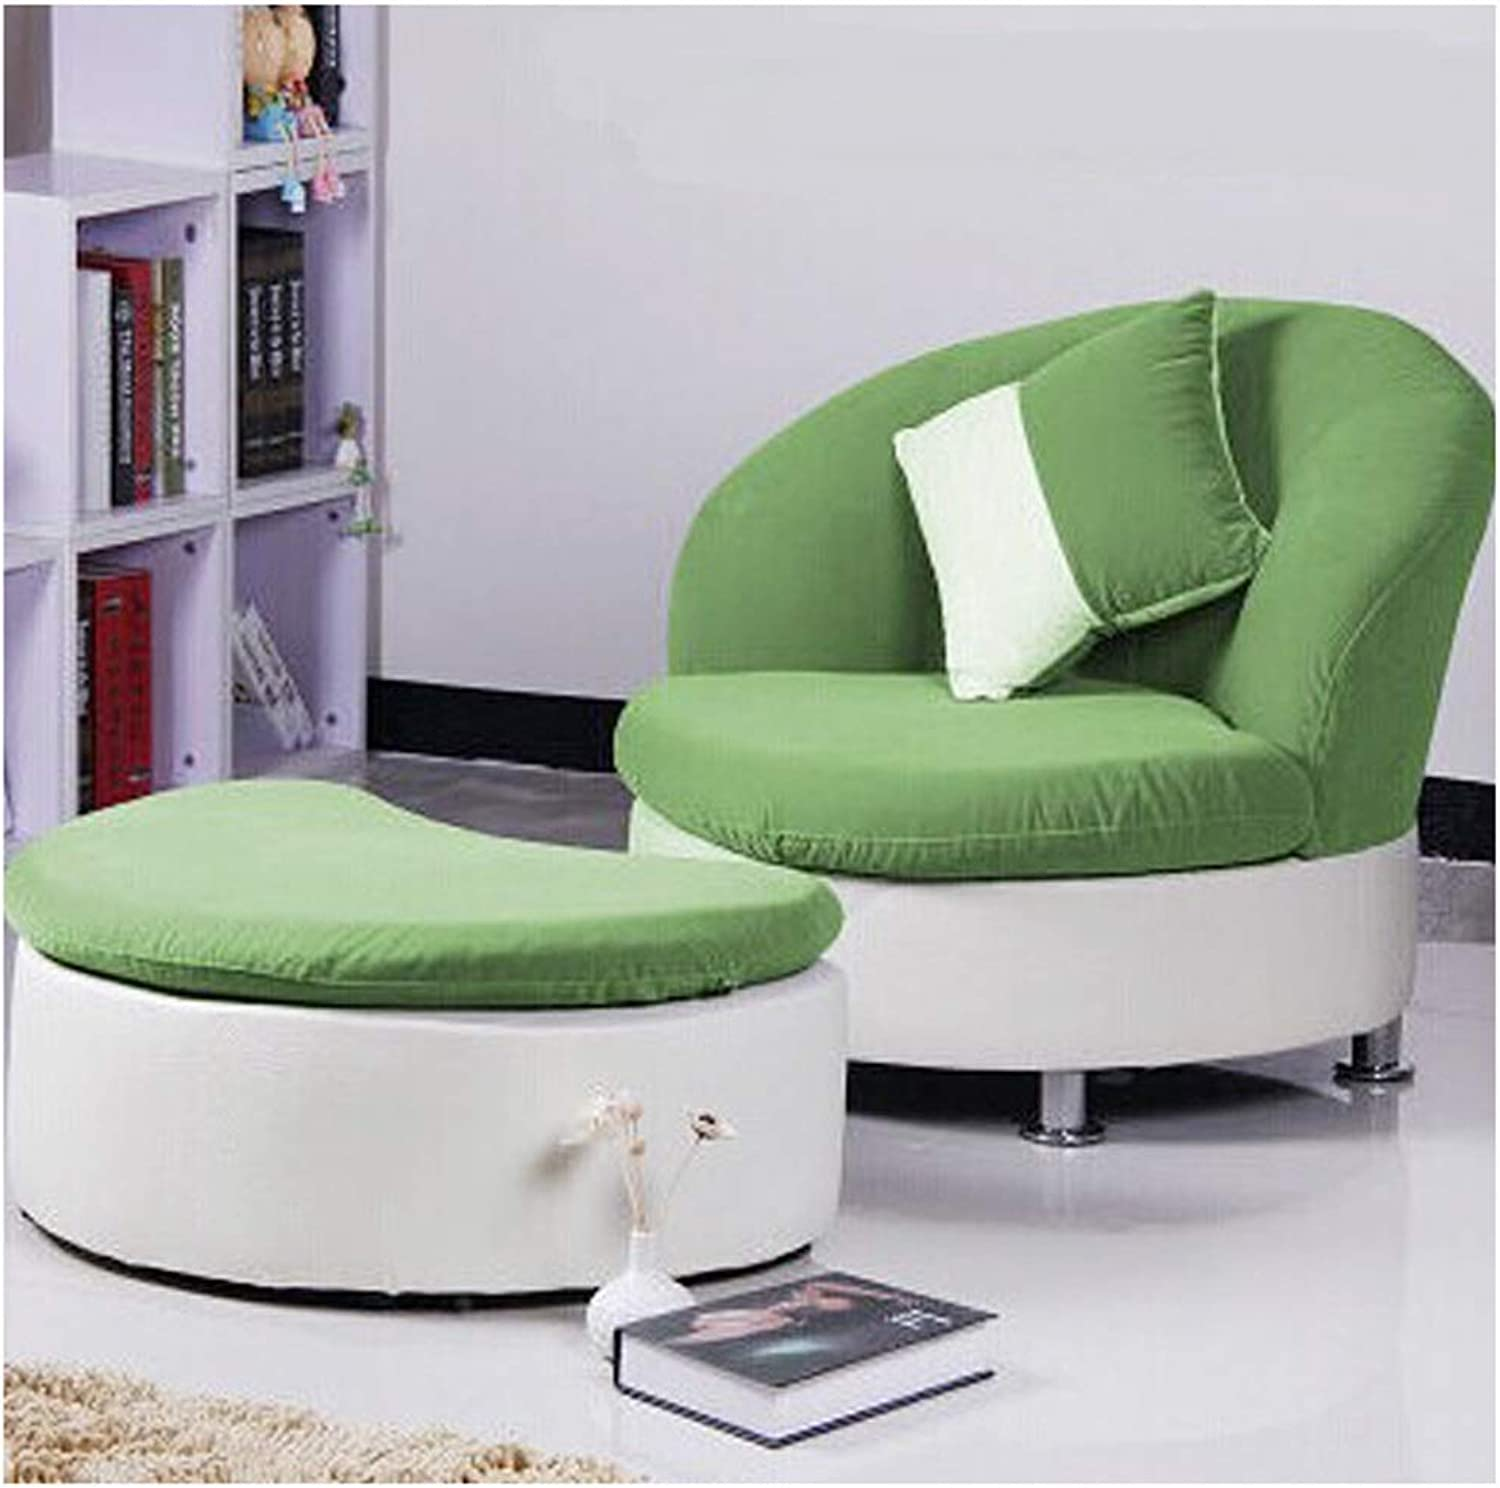 SCM Fashion Lazy Sofa Single Fabric Backrest Balcony Living Room Creative Leisure Sofa Chair with Footrest 88×85cm (color   Grass Green)